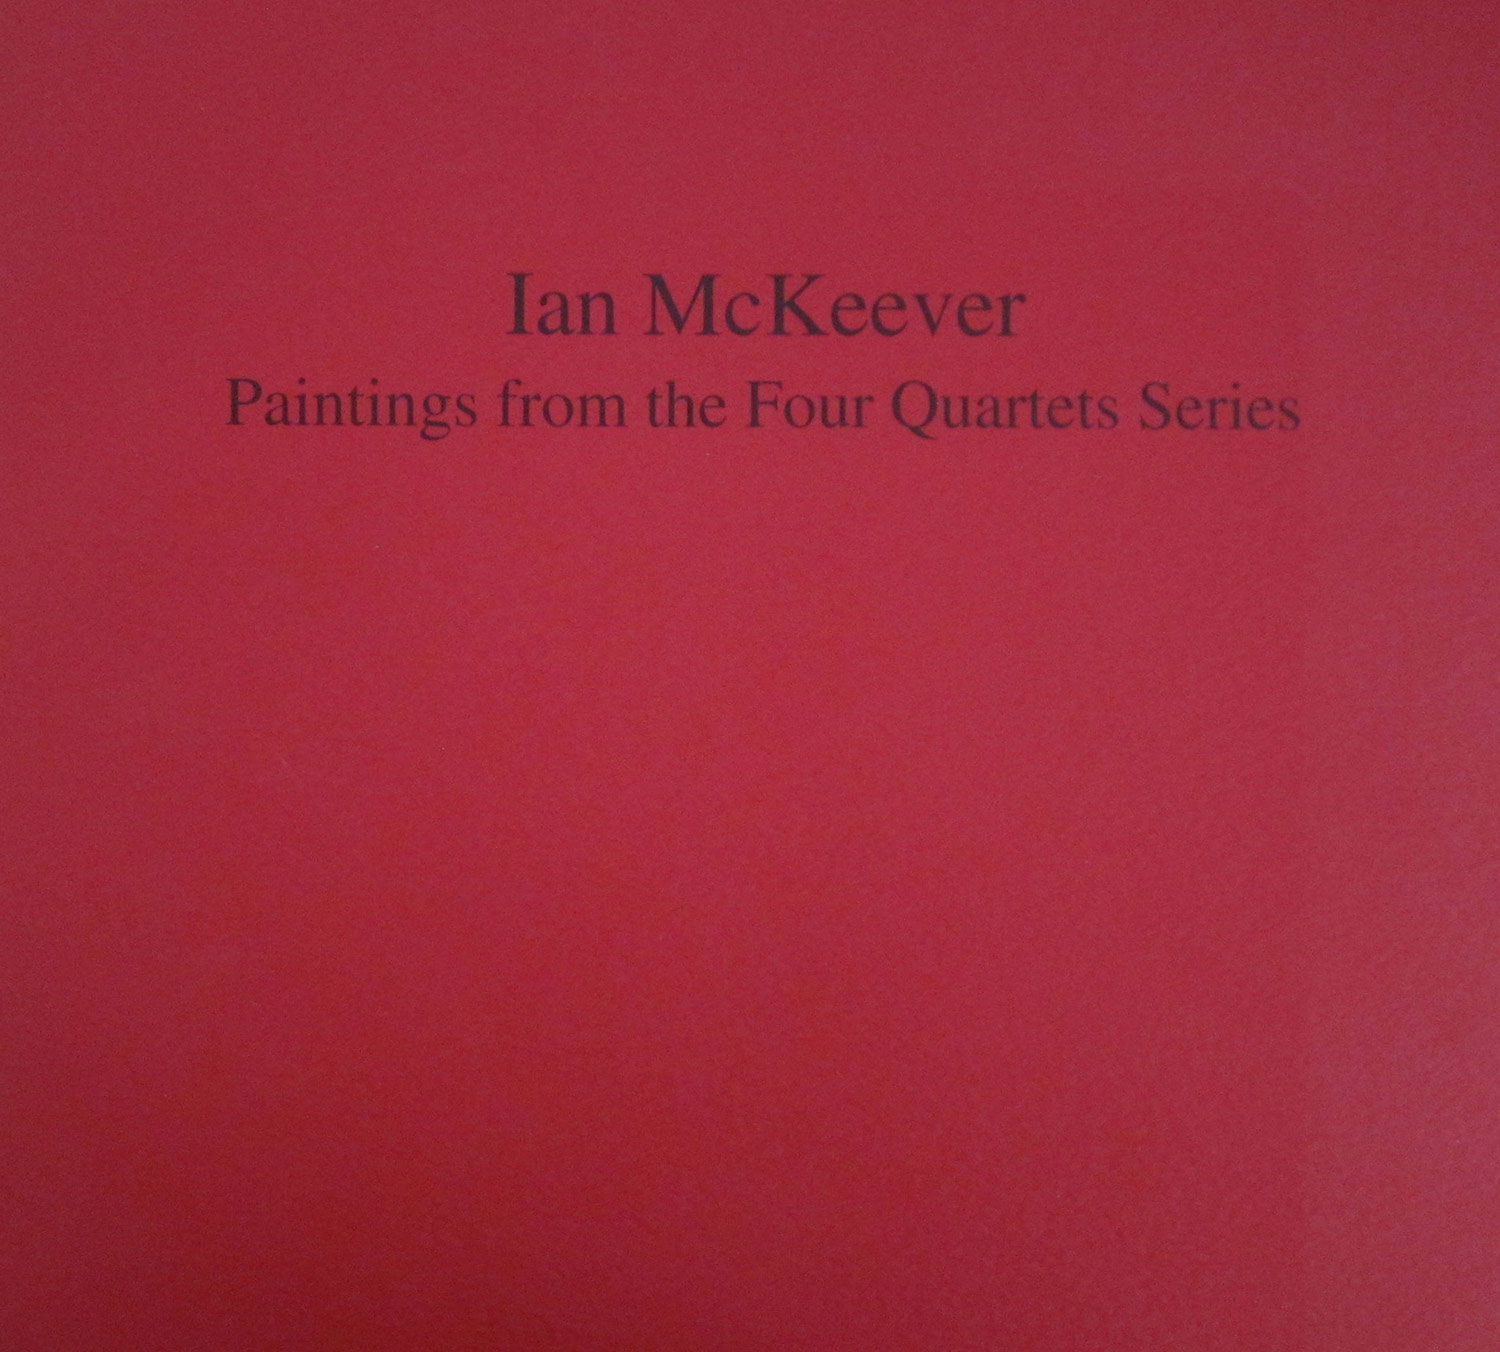 Paintings from the Four Quartets Series